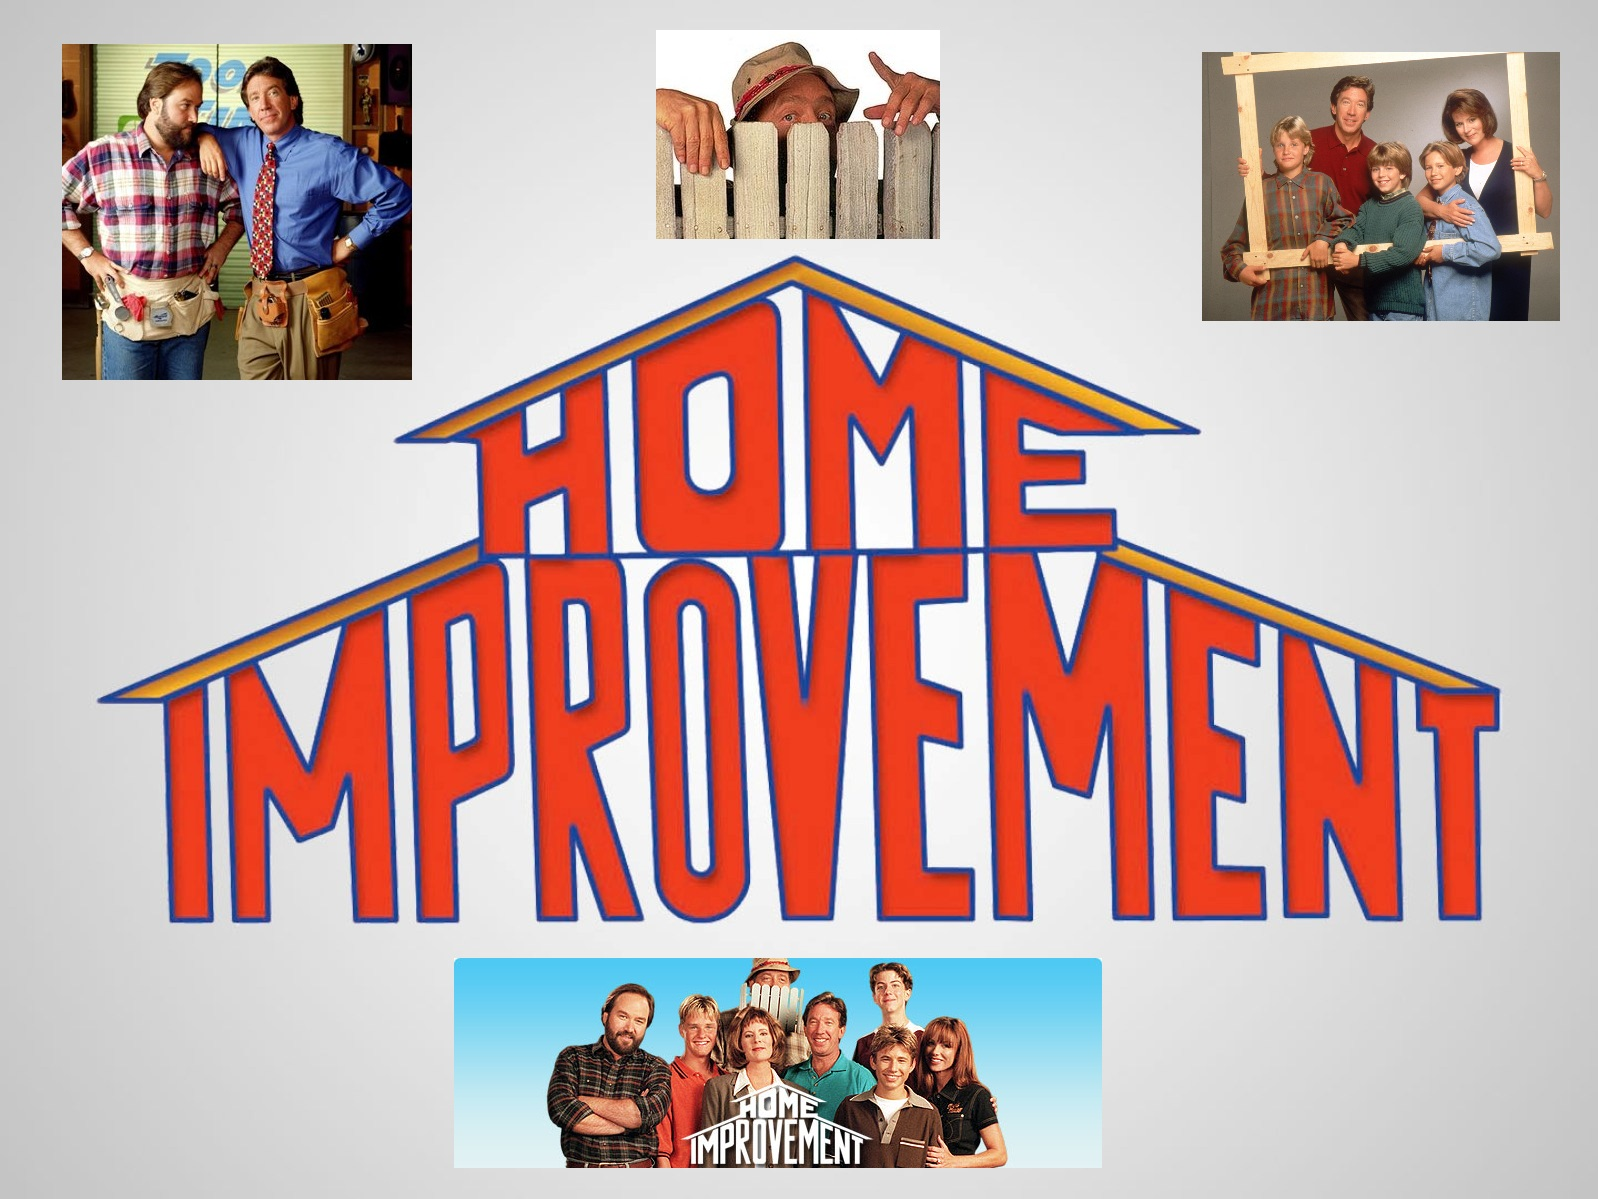 Home-improvement-home-improvement-tv-show-33674337-1598-1199.jpg